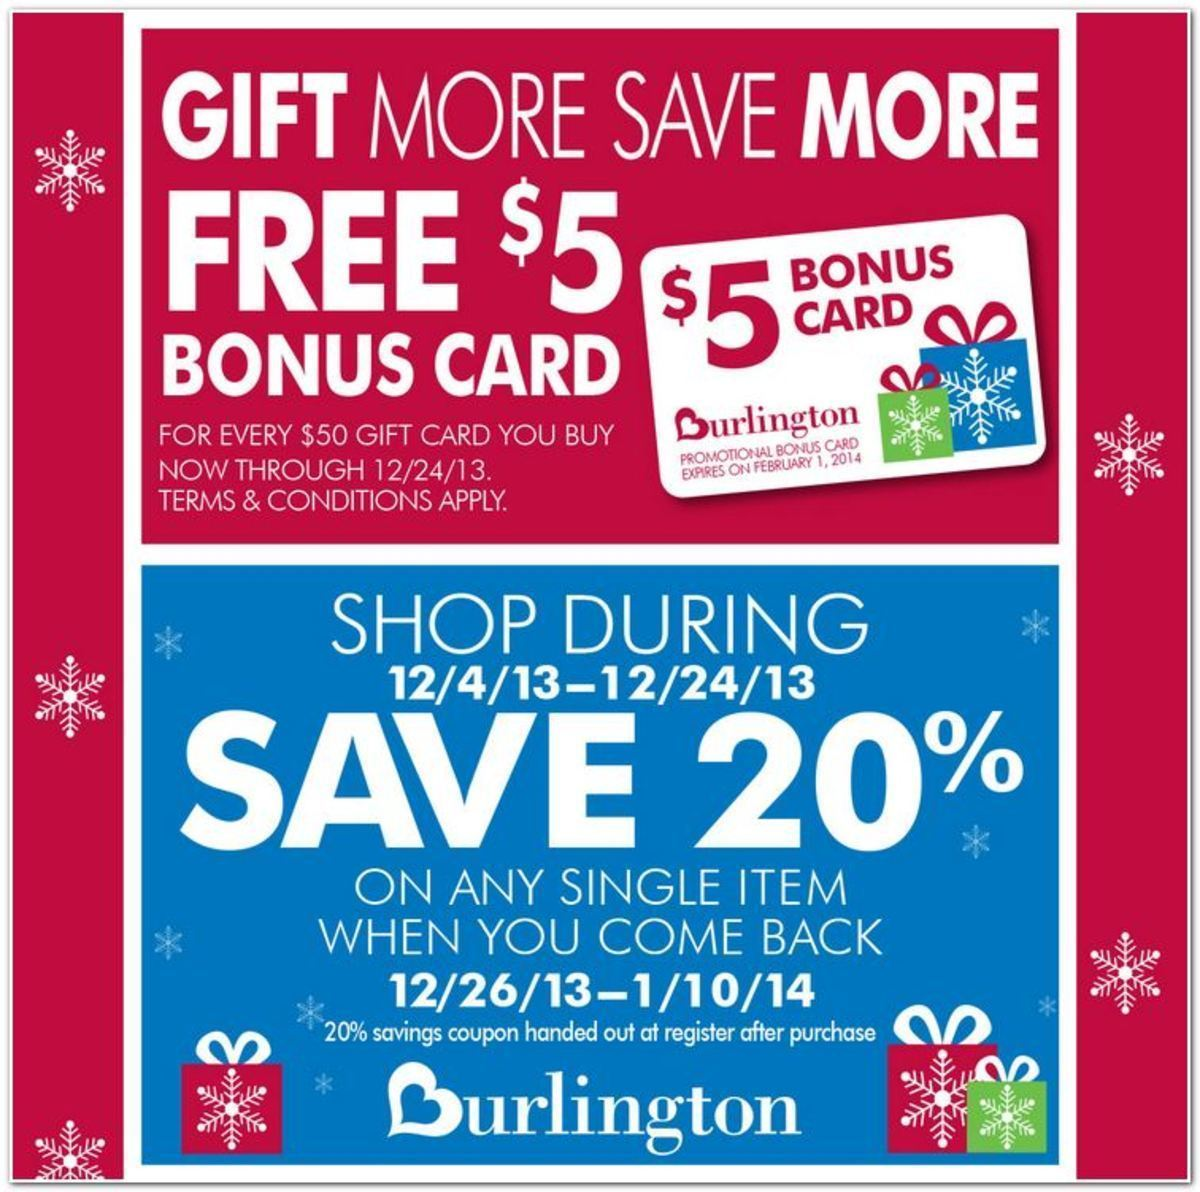 c377c87c1f2 burlington coat factory coupons 2015 – Printables (1) – Printable ...